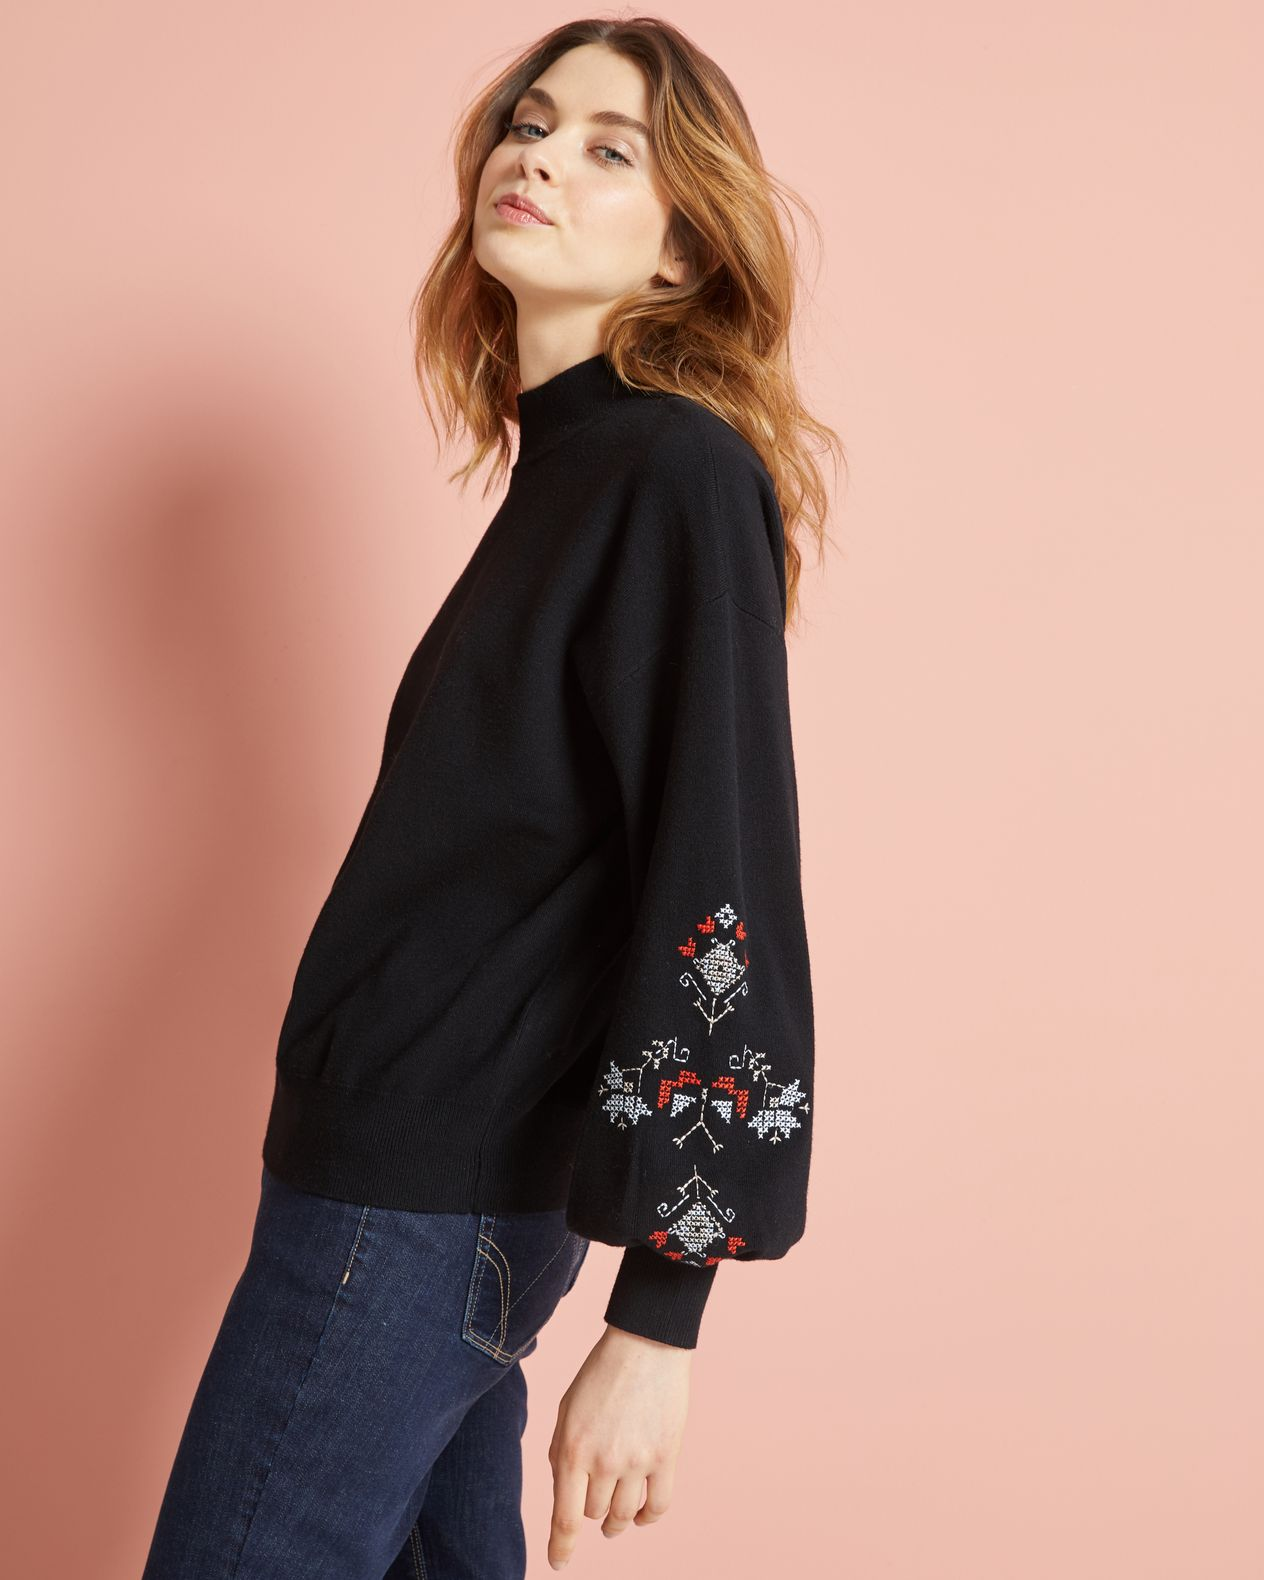 Pull femme manches bouffantes brodées